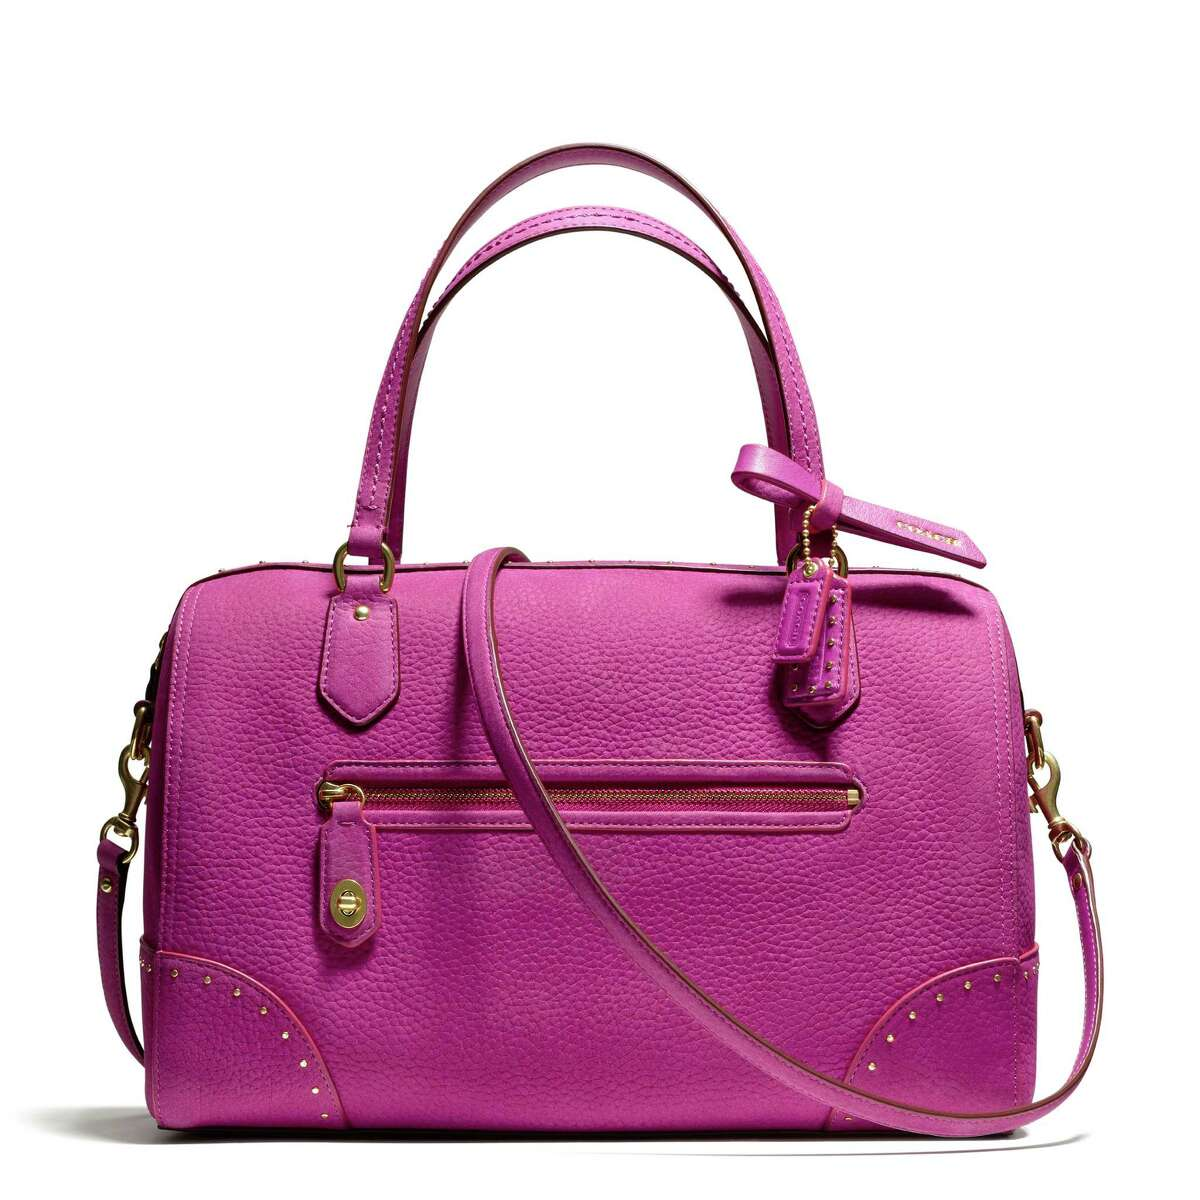 PRETTY IN PINK During the month of October, 20 percent of sales of the Poppy leather satchel and other